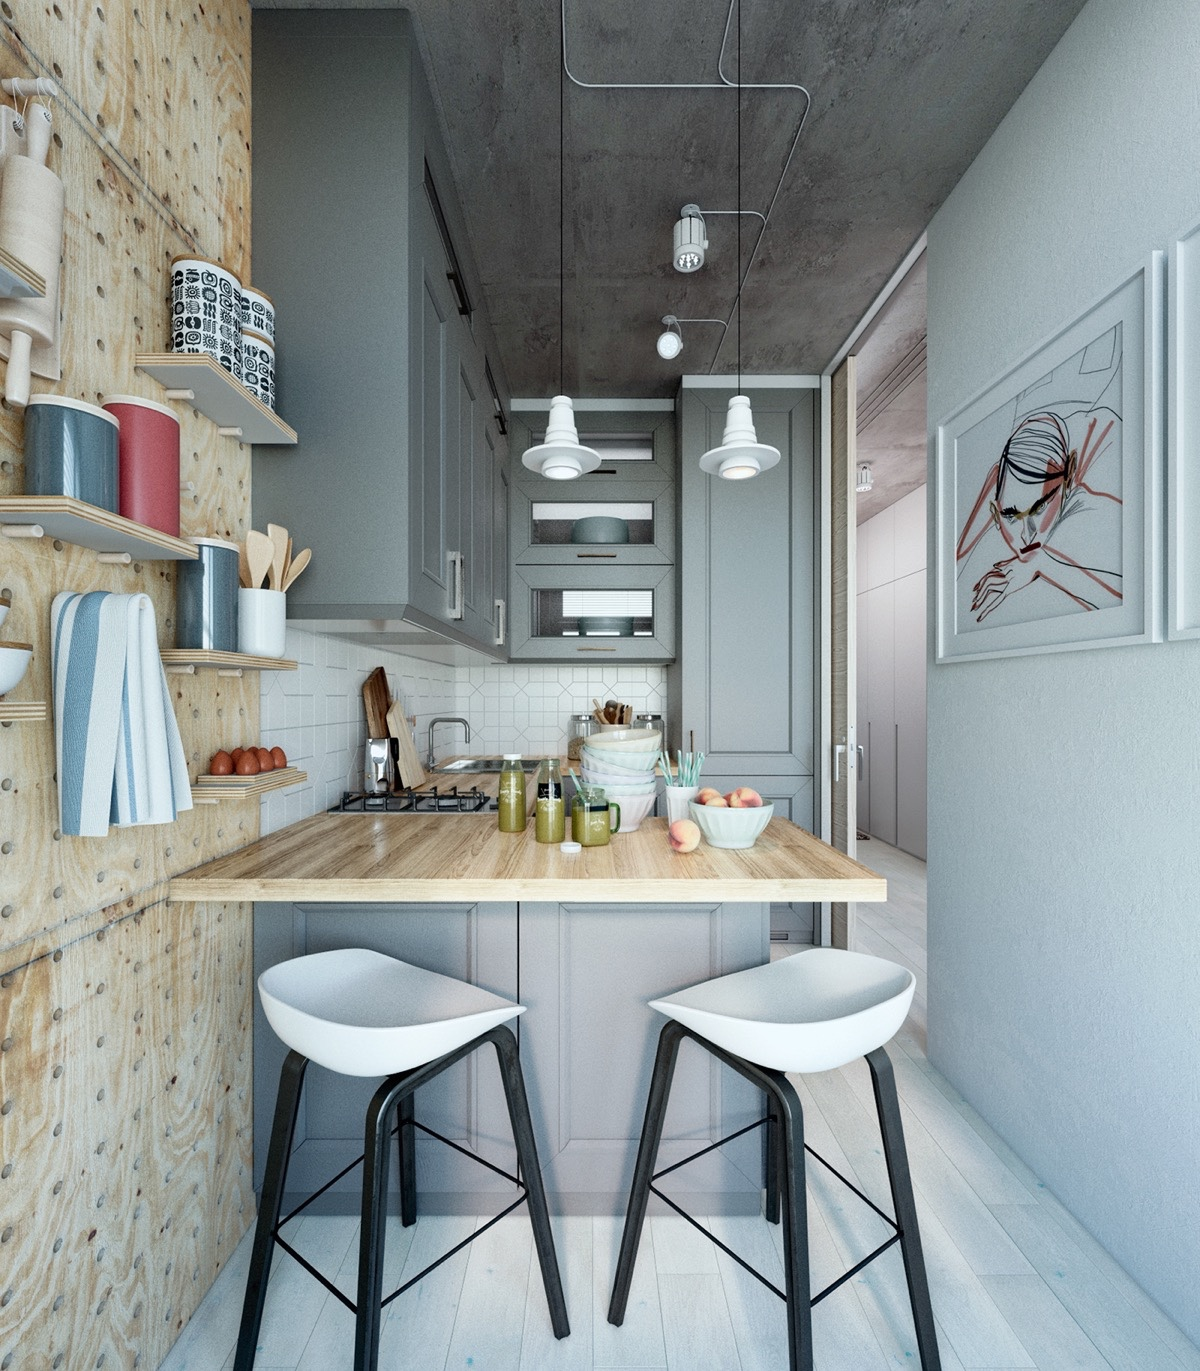 Two Takes On The Same Super Small Apartment - Small-apartment-design-ideas